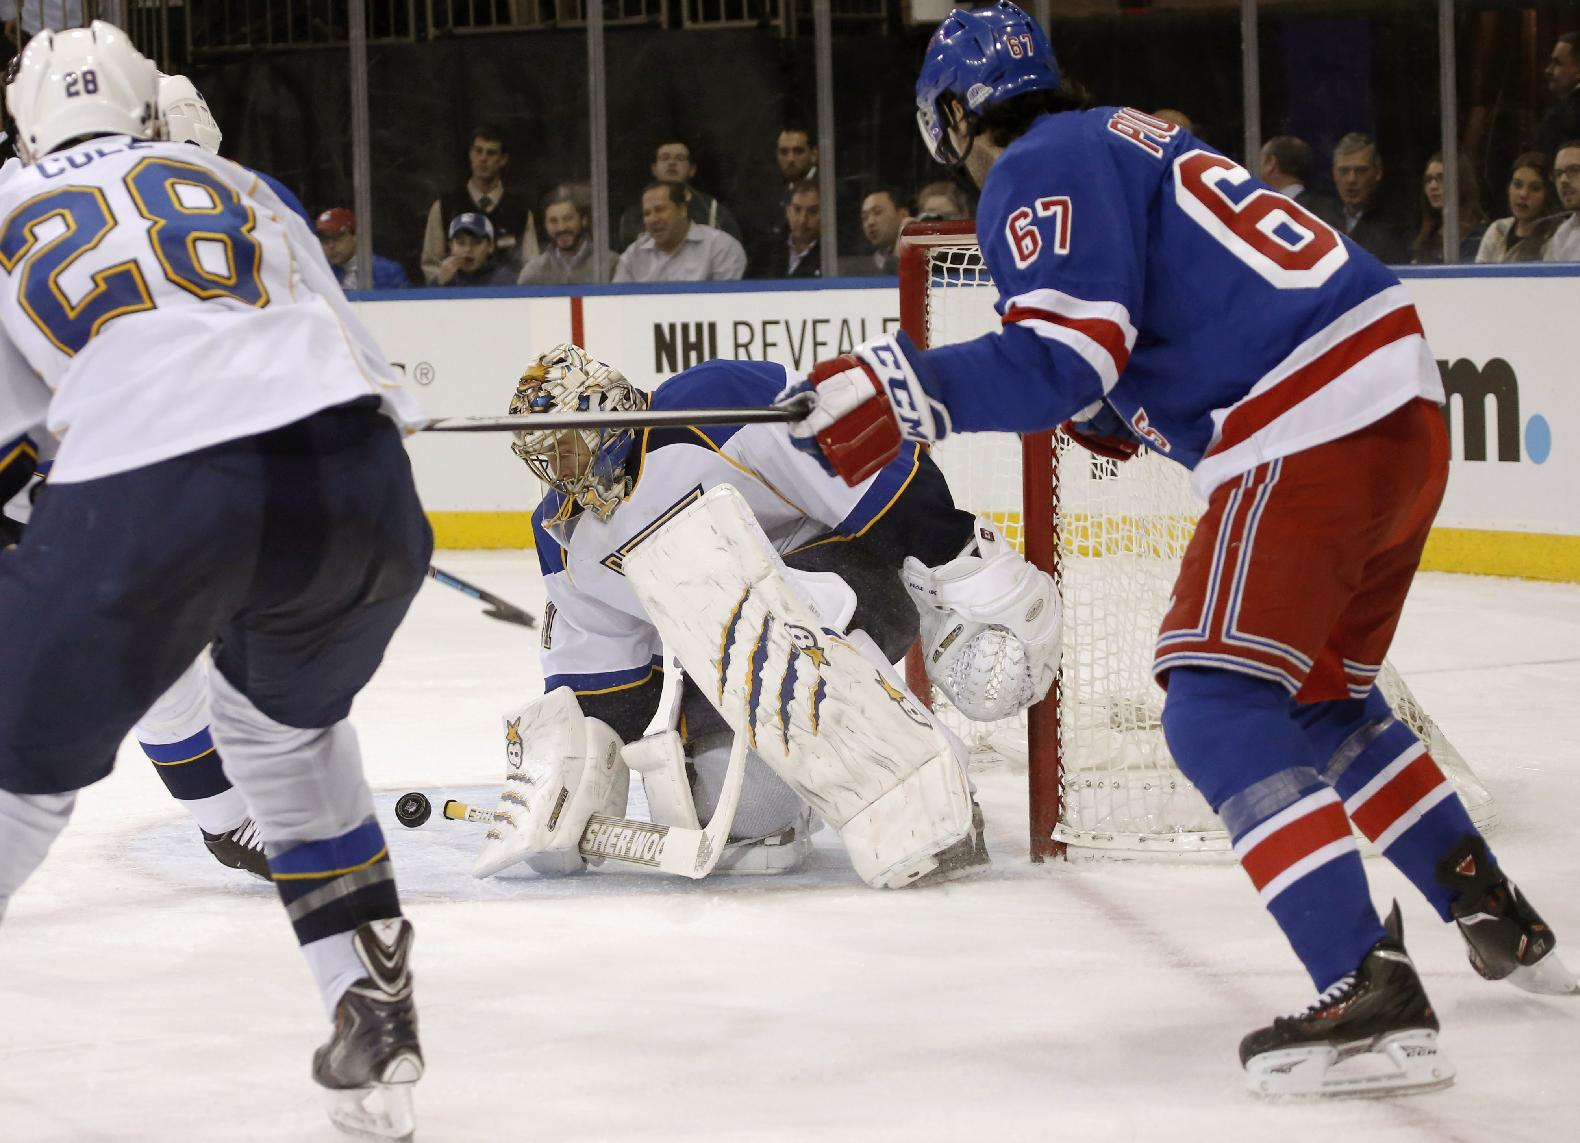 St. Louis Blues goalie Jaroslav Halak (41), of the Czech Republic, blocks a shot with New York Rangers left wing Benoit Pouliot (67) and Blues defenseman Ian Cole (28) watching during the second period of an NHL hockey game at Madison Square Garden in New York, Thursday, Jan. 23, 2014